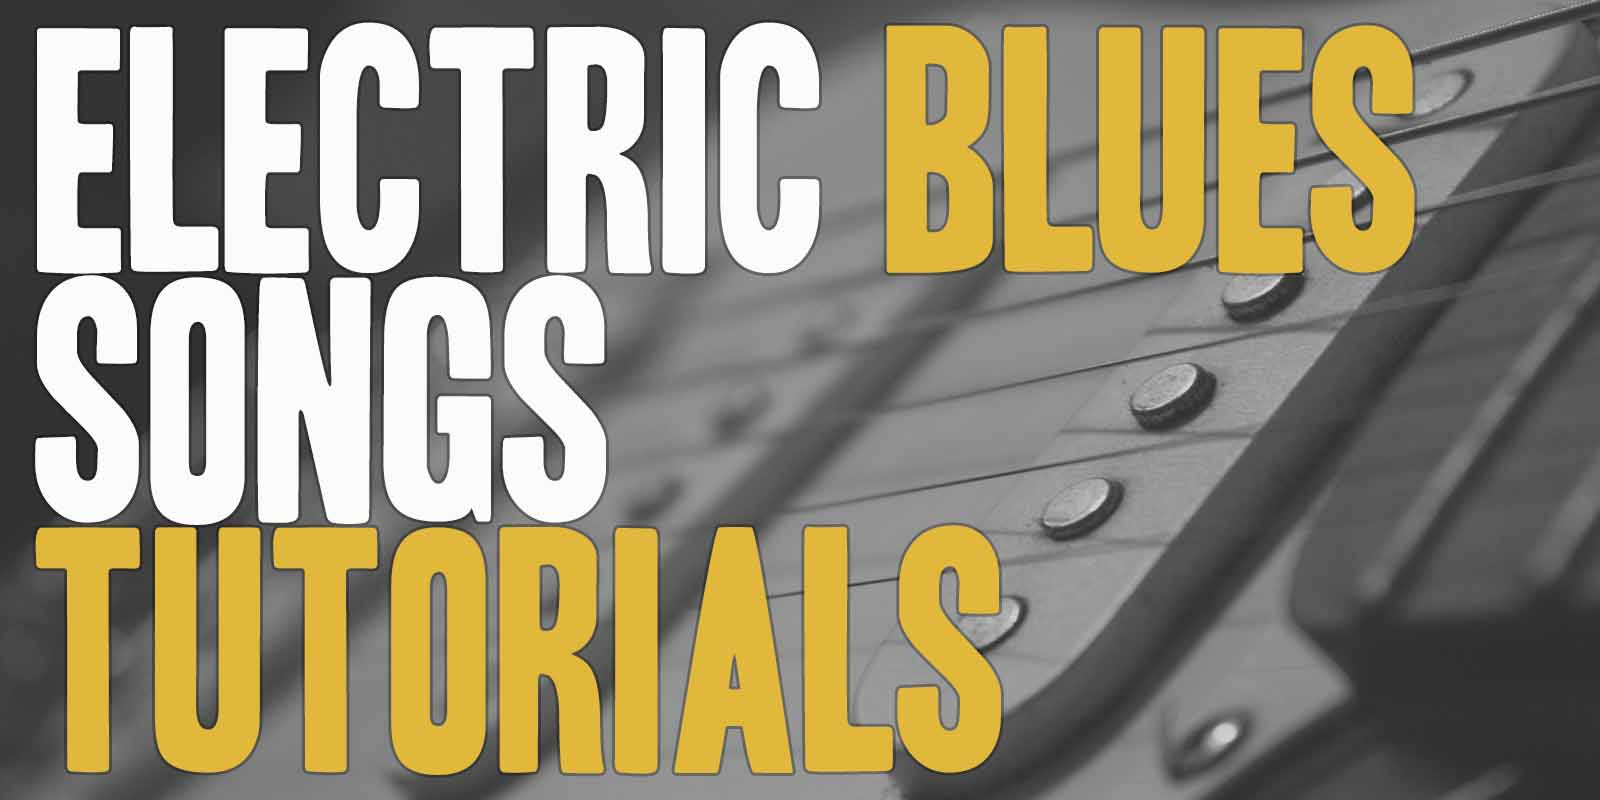 ELECTRIC BLUES SONGS TUTORIALS Learning to play the most famous electric blues songs will be so much easier with Burninguitar's  Electric blues songs tutorials